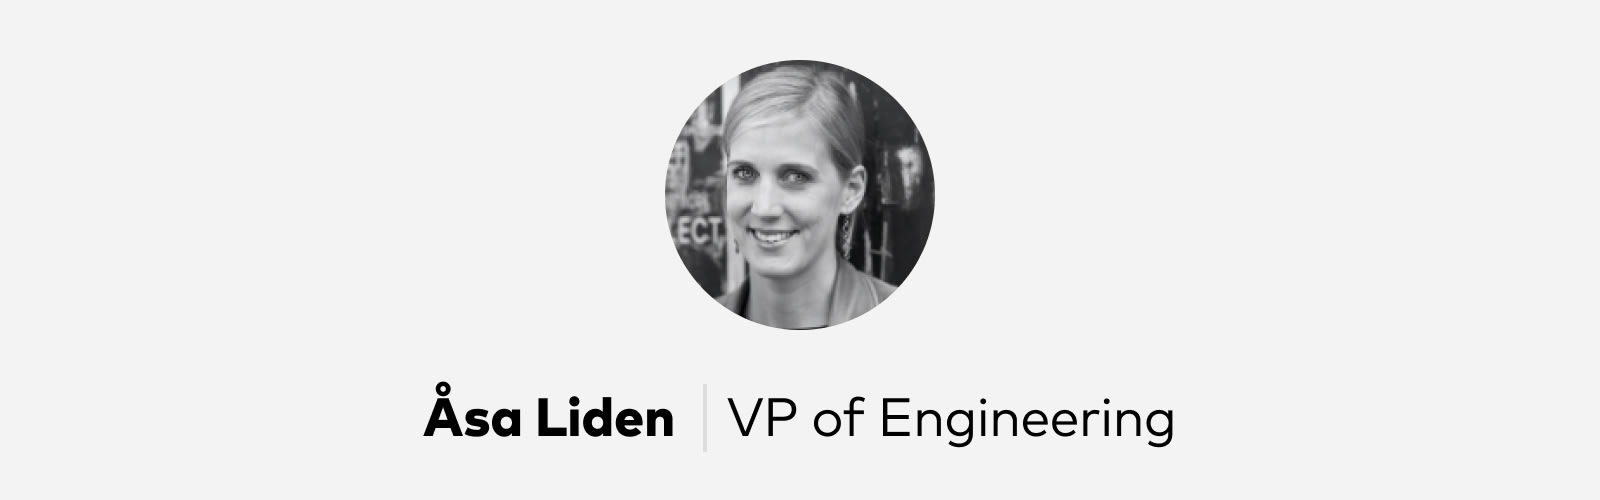 Asa Liden VP Engineering at Pitch